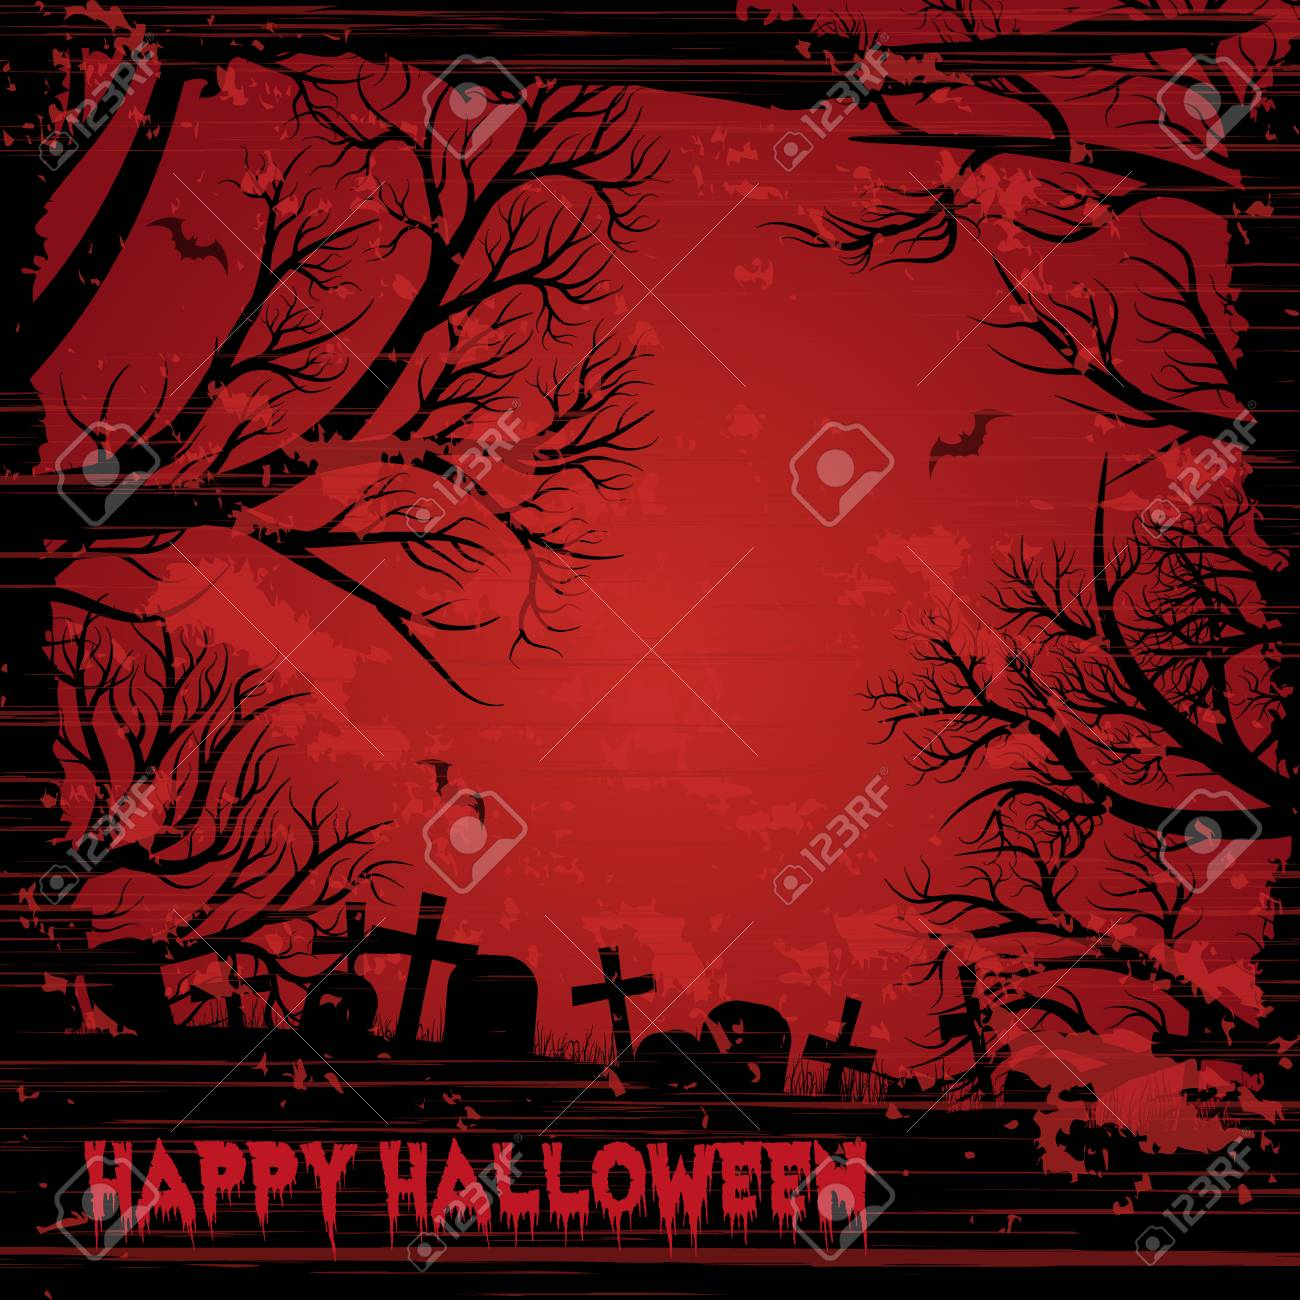 Happy Halloween night background with bloody red sky. Grunge style. - 109879659